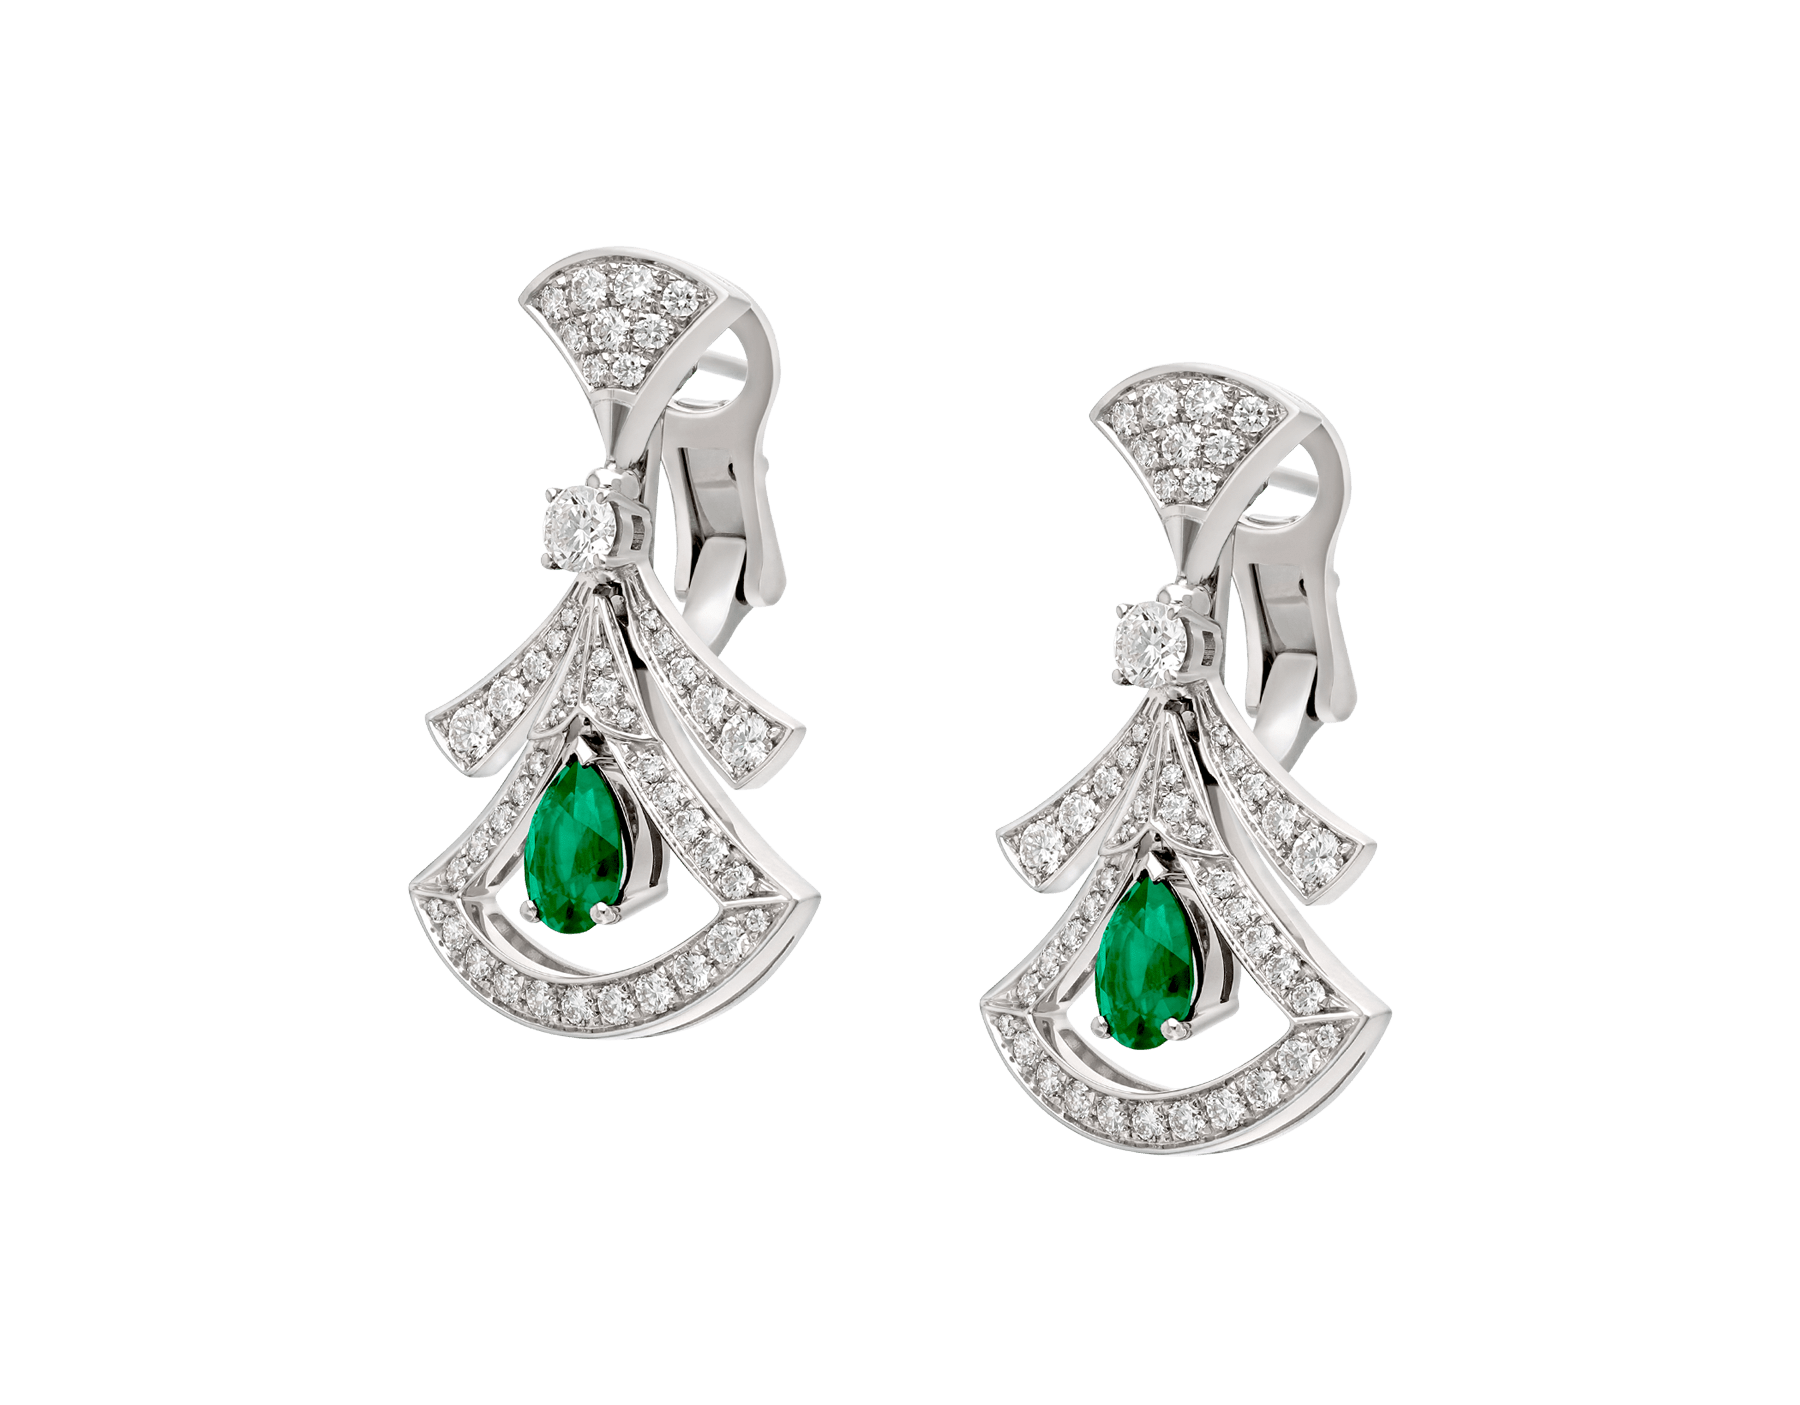 DIVAS' DREAM 18 kt white gold openwork earring set with pear-shaped emeralds, round brilliant-cut and pavé diamonds. 356956 image 2